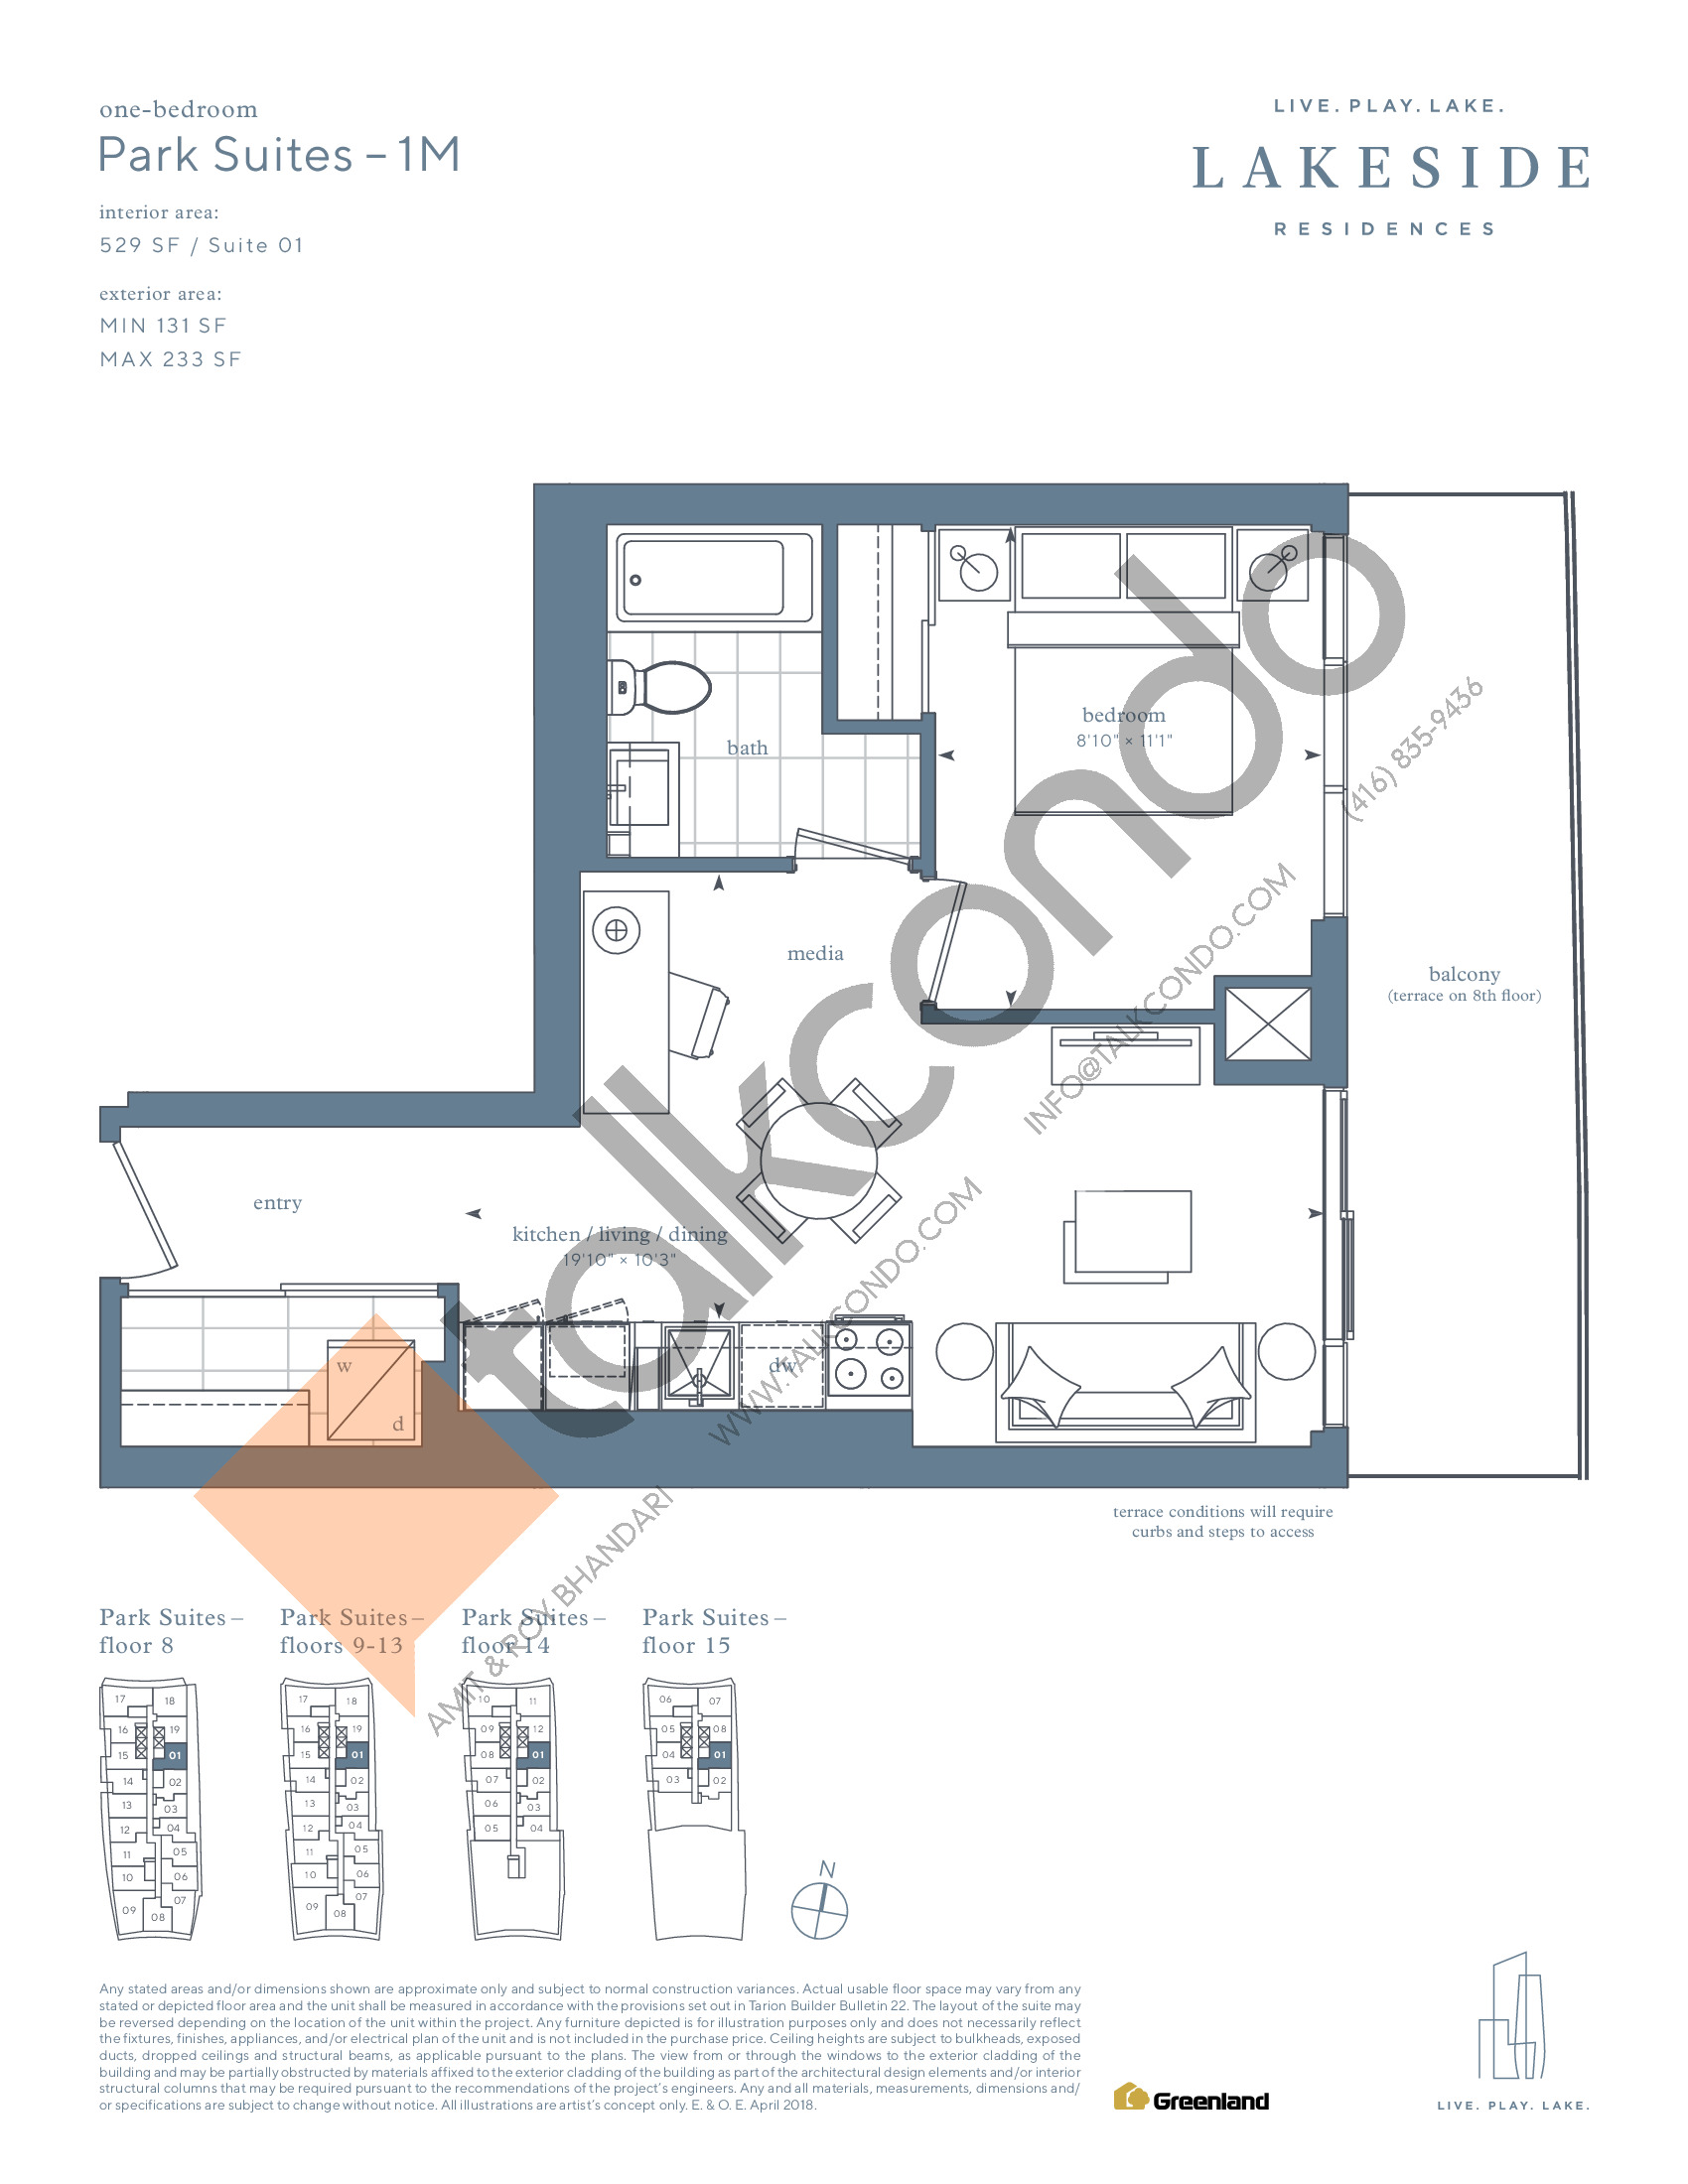 Park Suites - 1M Floor Plan at Lakeside Residences - 529 sq.ft